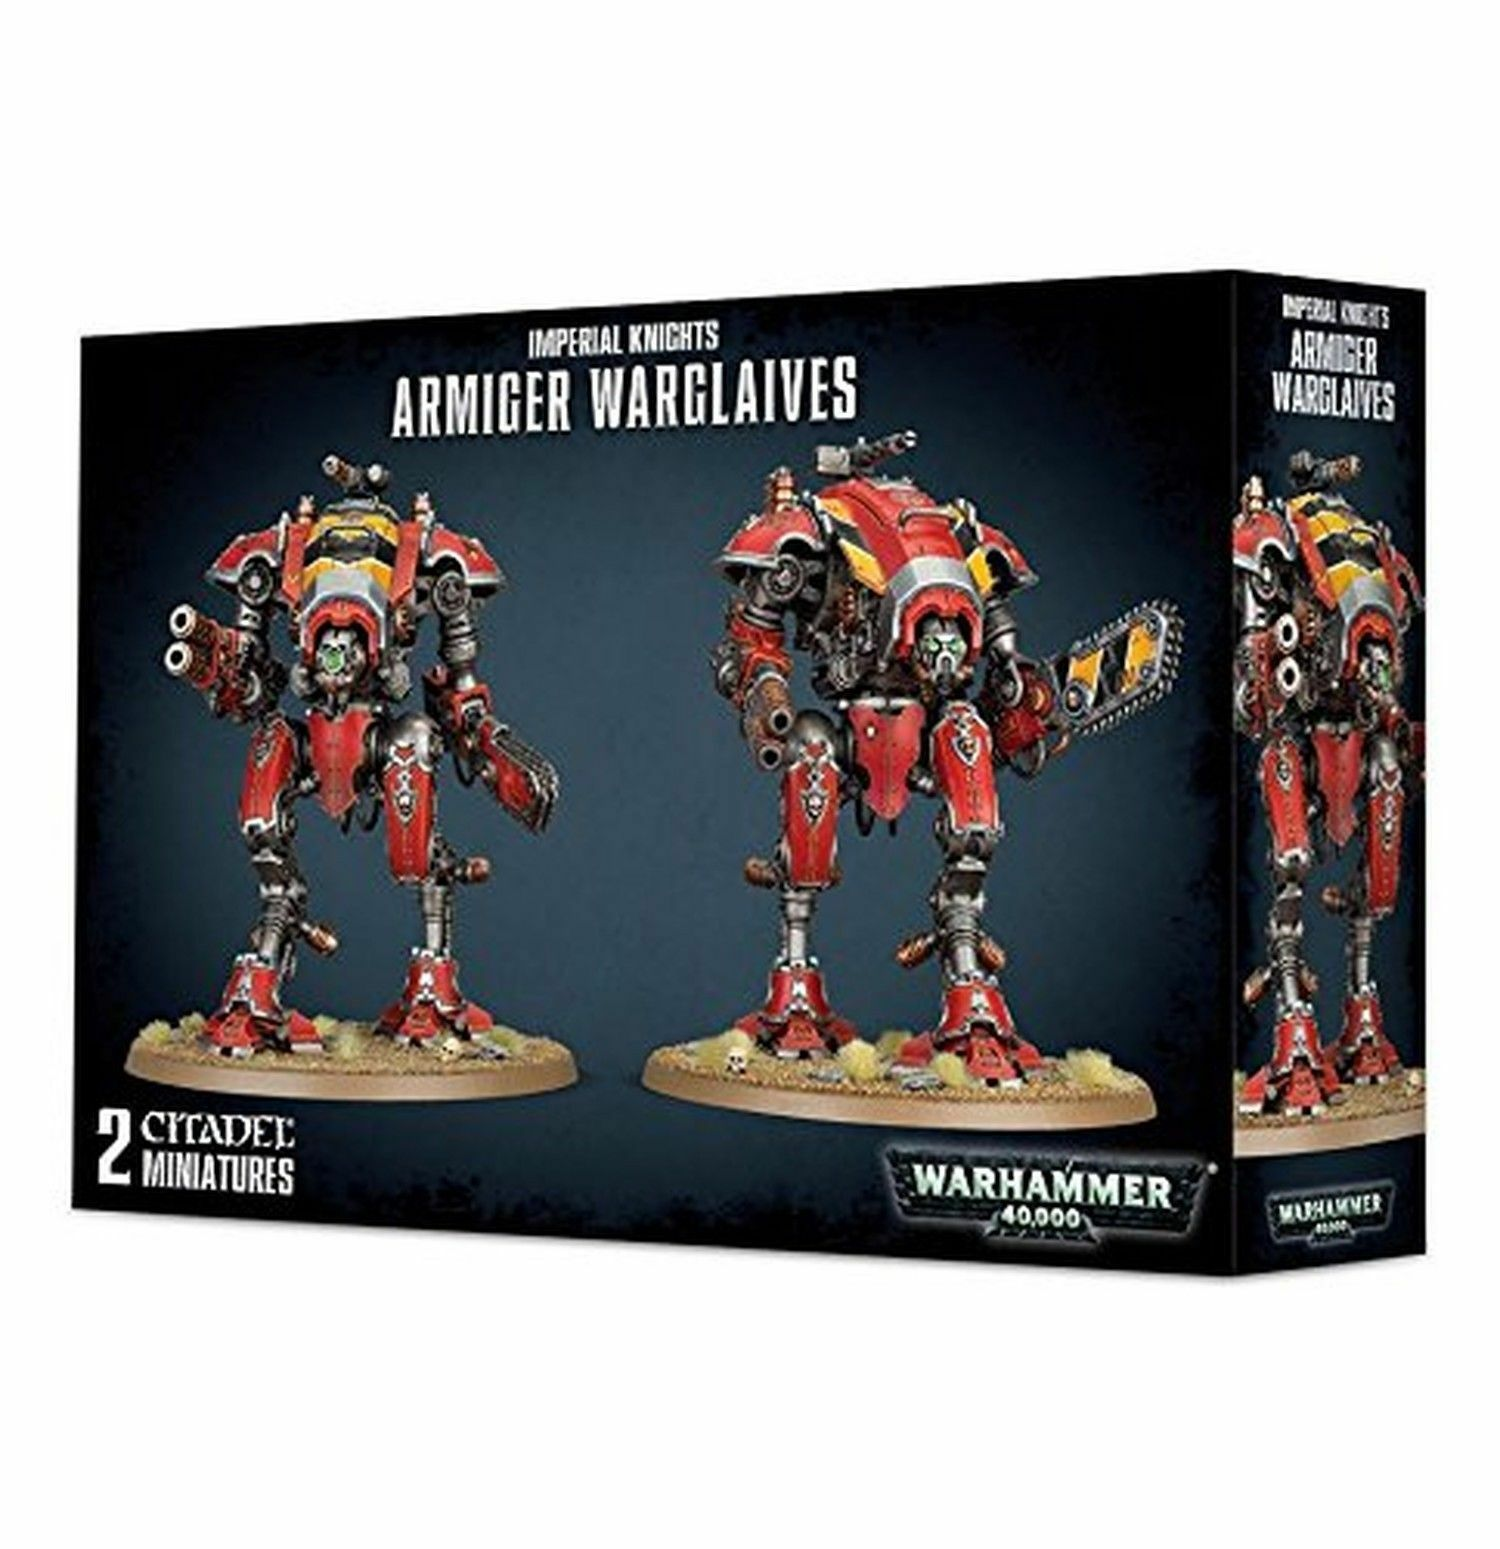 Armiger Warglaives Imperial Knights Warhammer 40K NIB